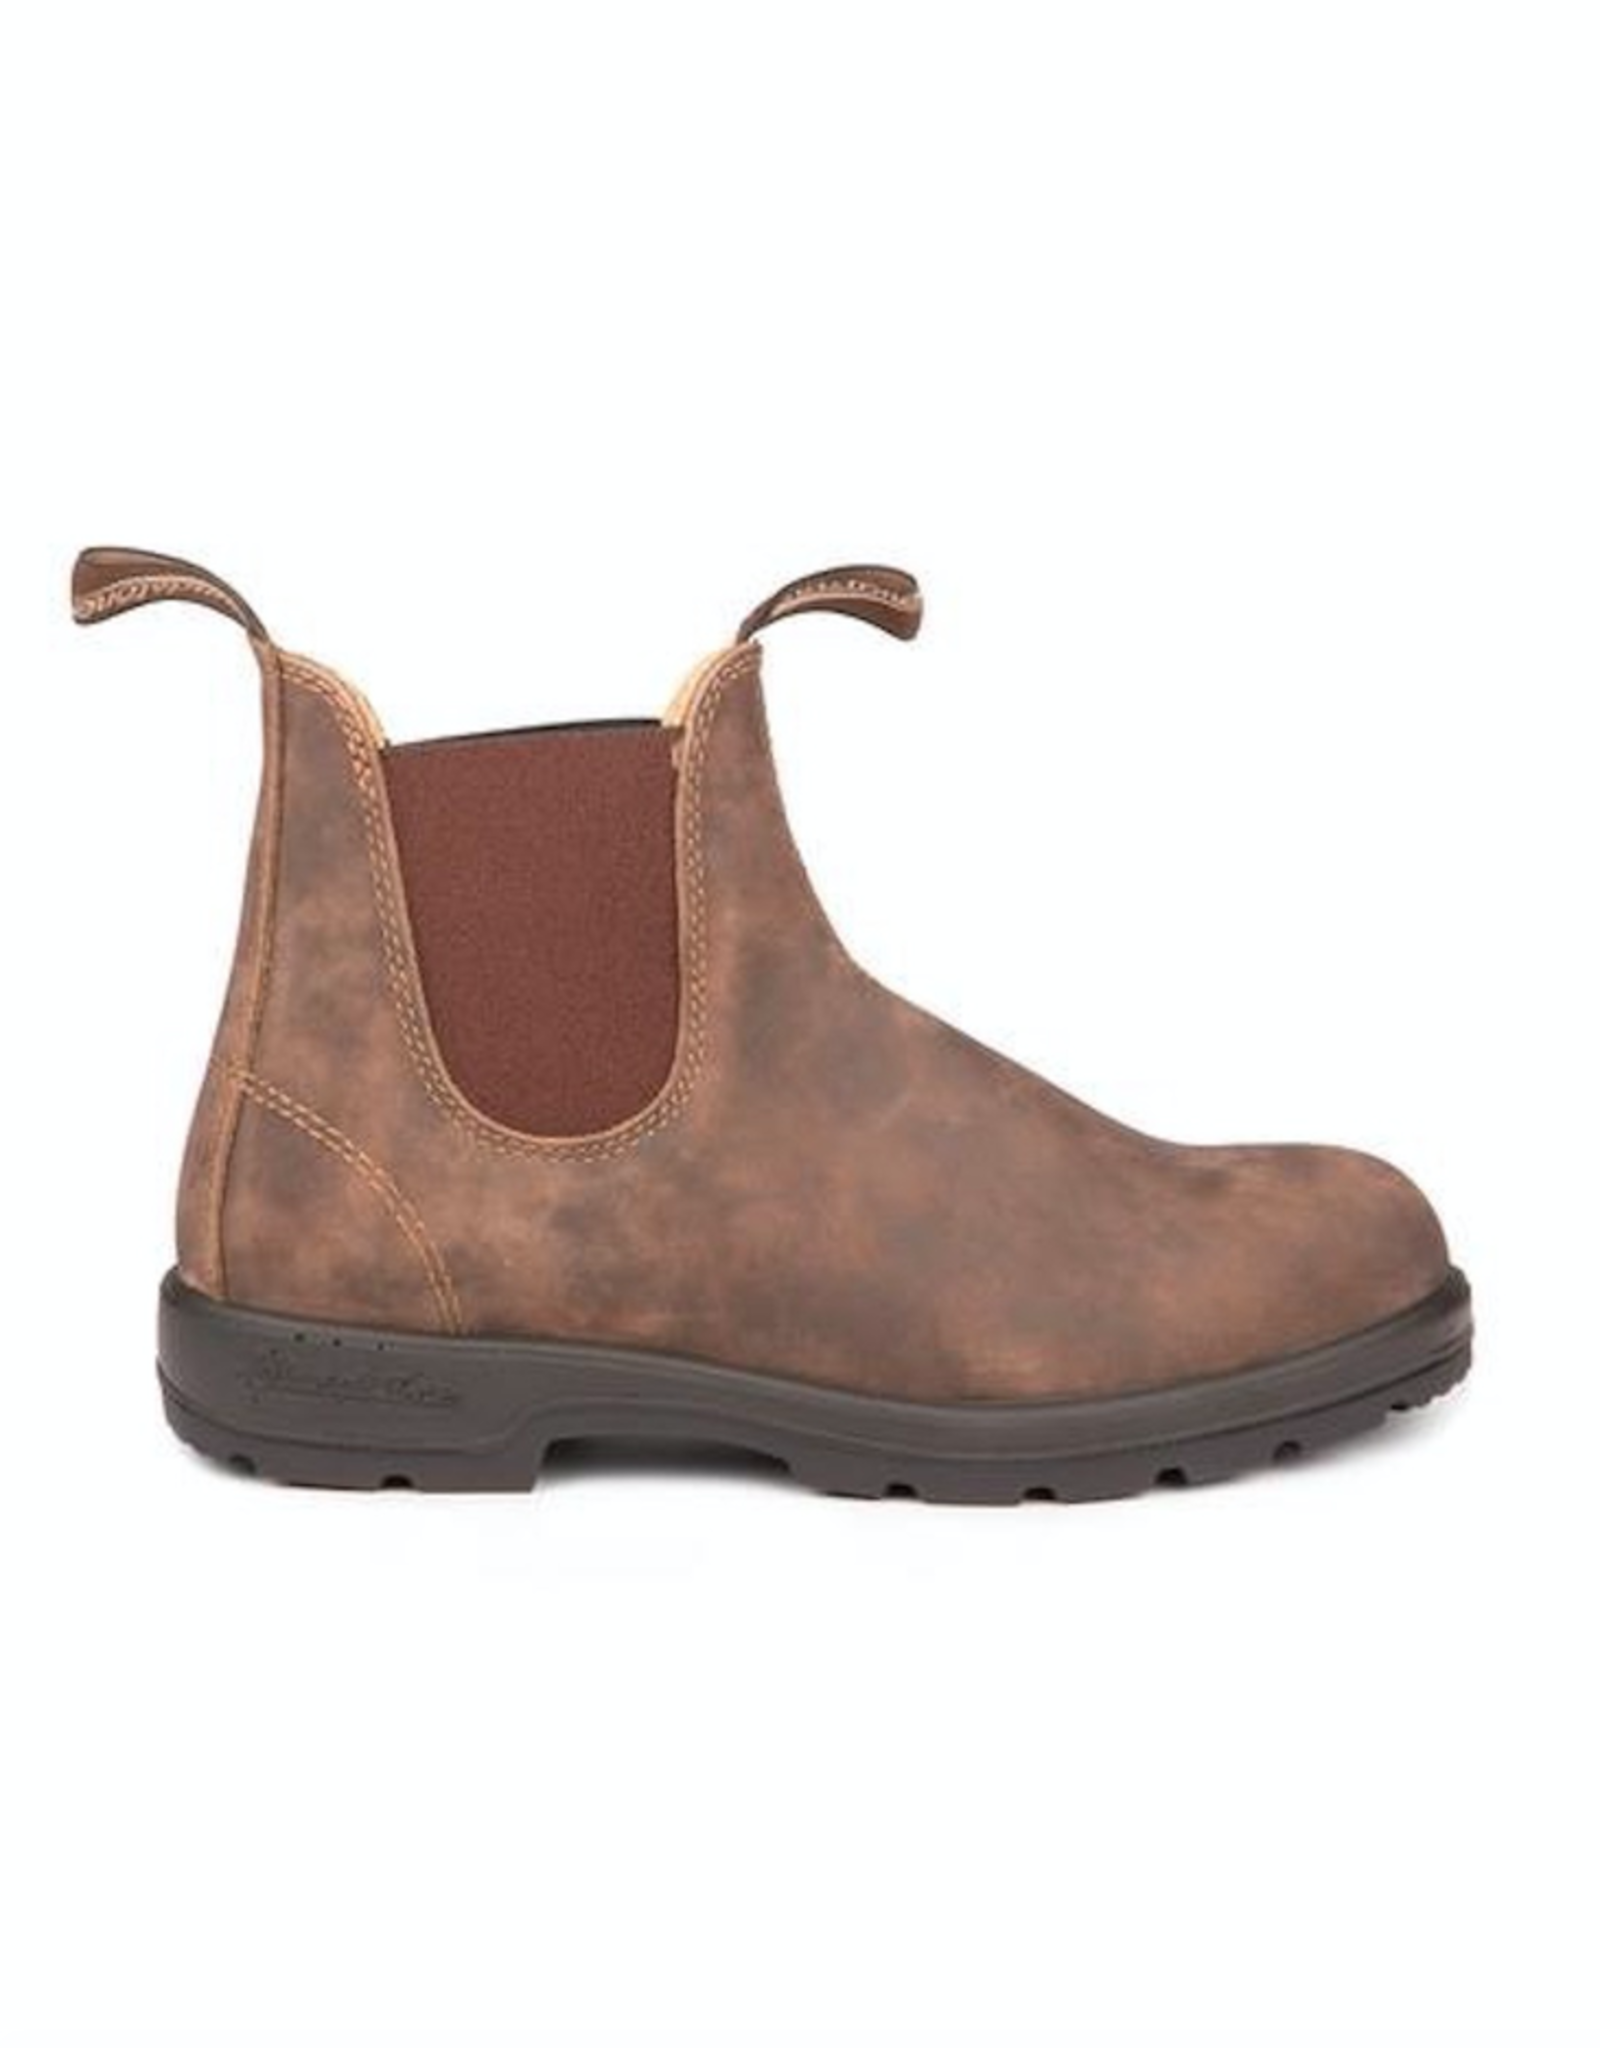 Blundstone 585 Leather Lined Boot